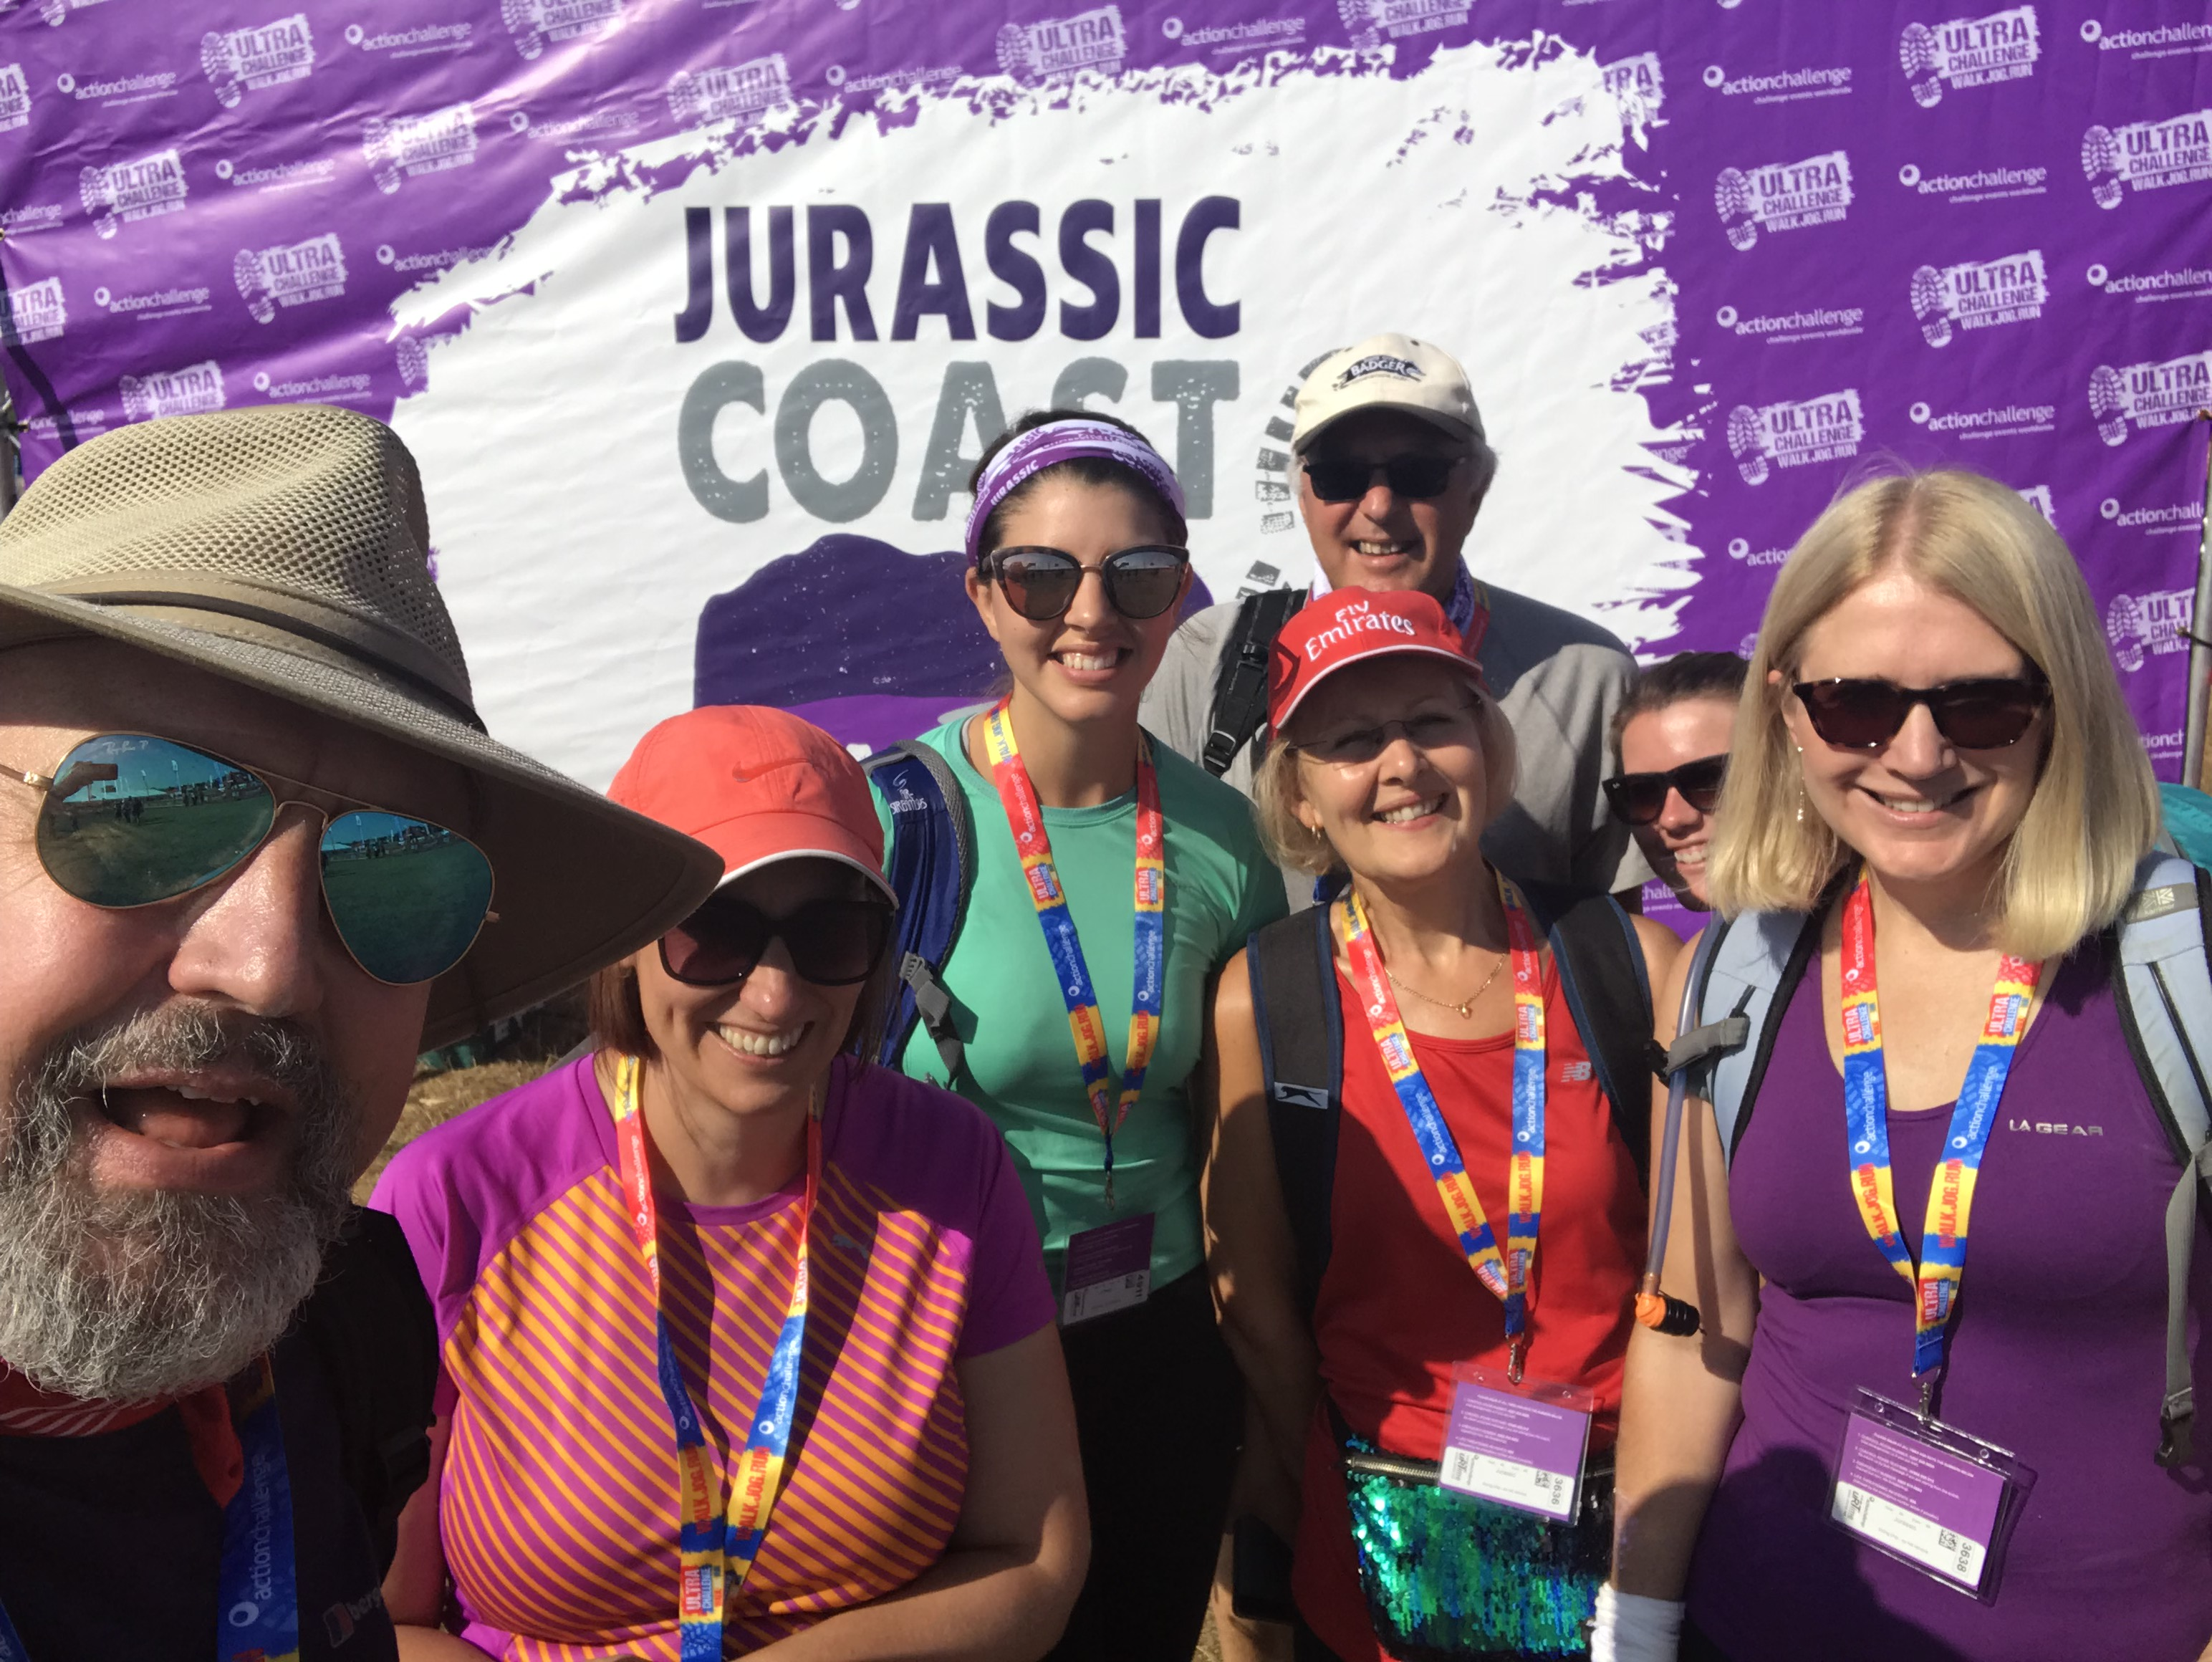 The H&W team take on the first ever Jurassic Coast Challenge